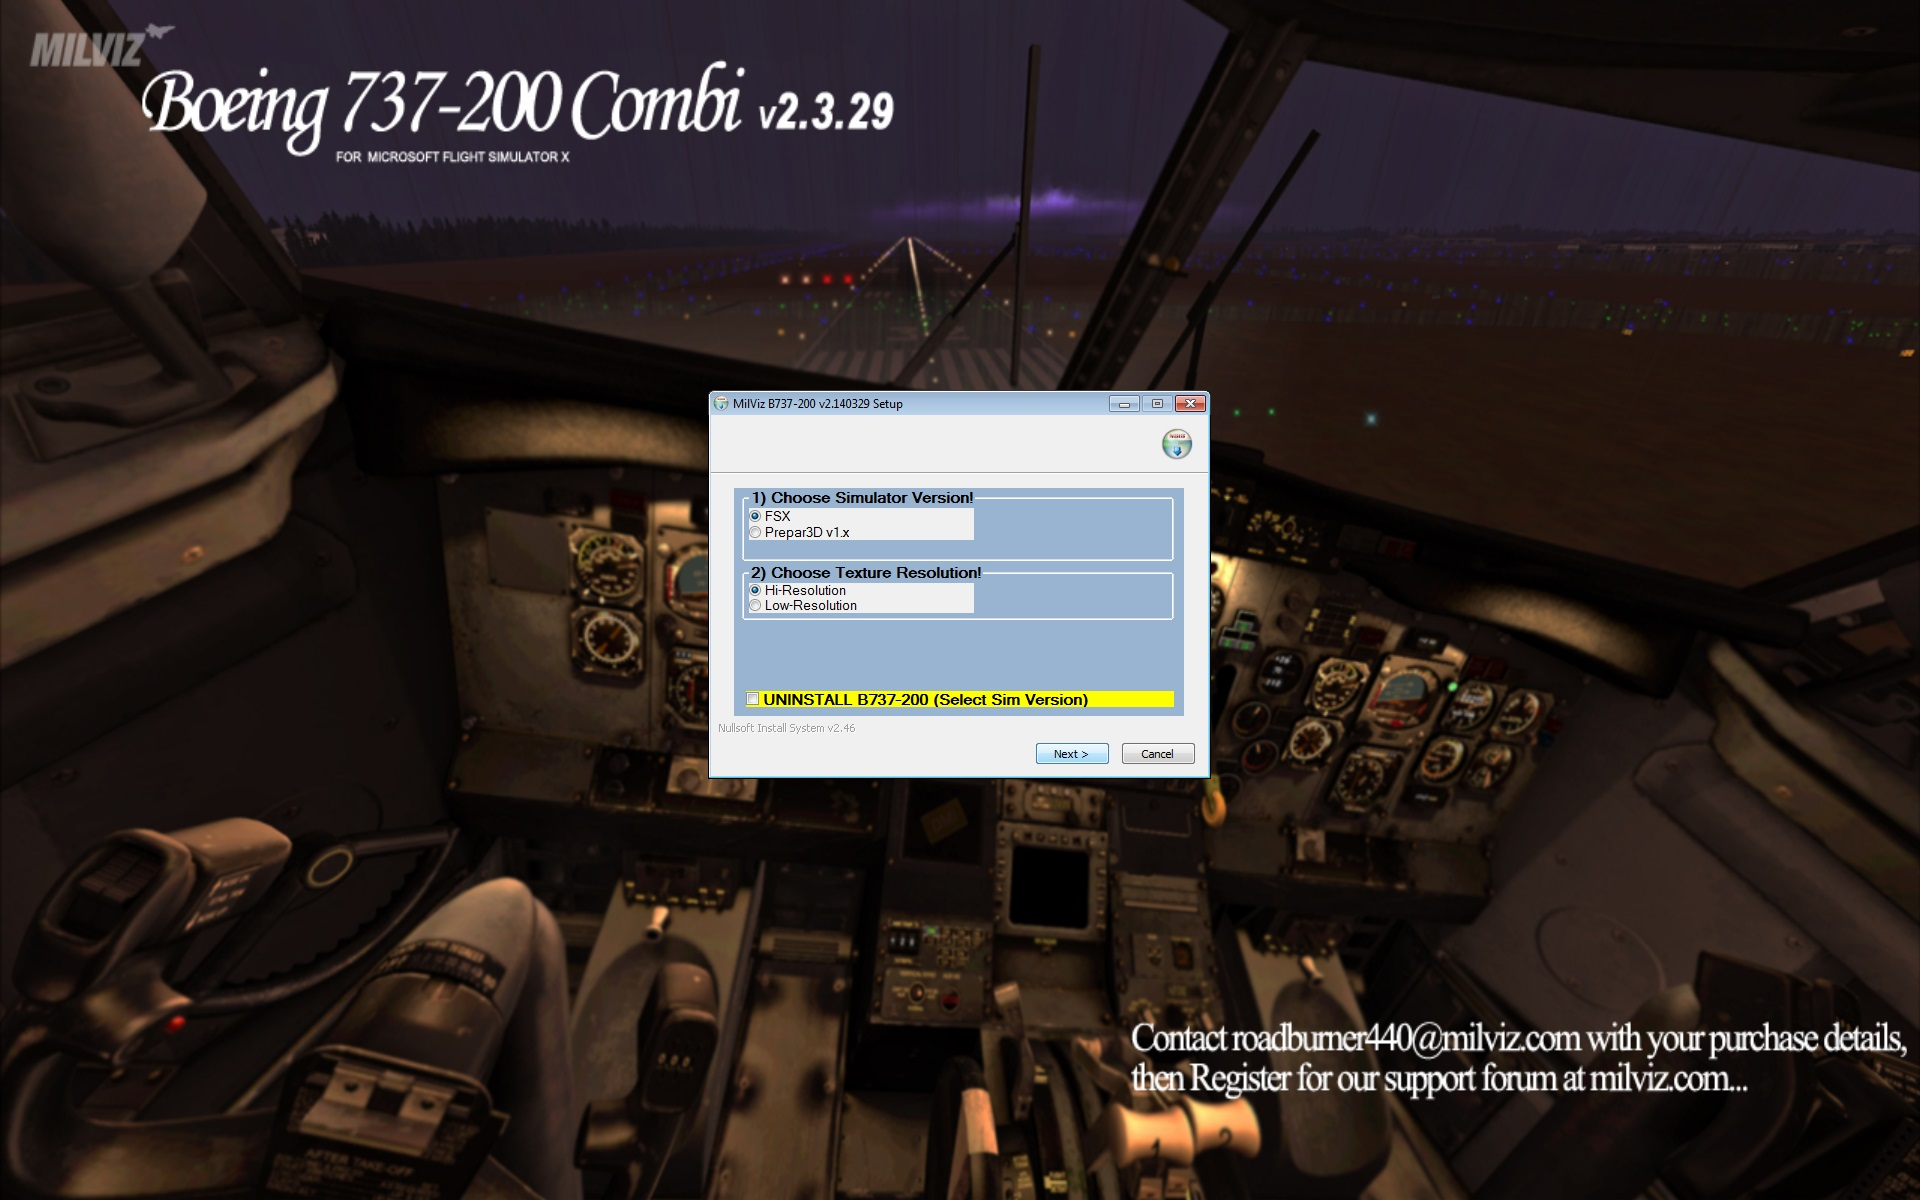 Review of MILVIZ – BOEING 737-200C for FSX/P3Dv1